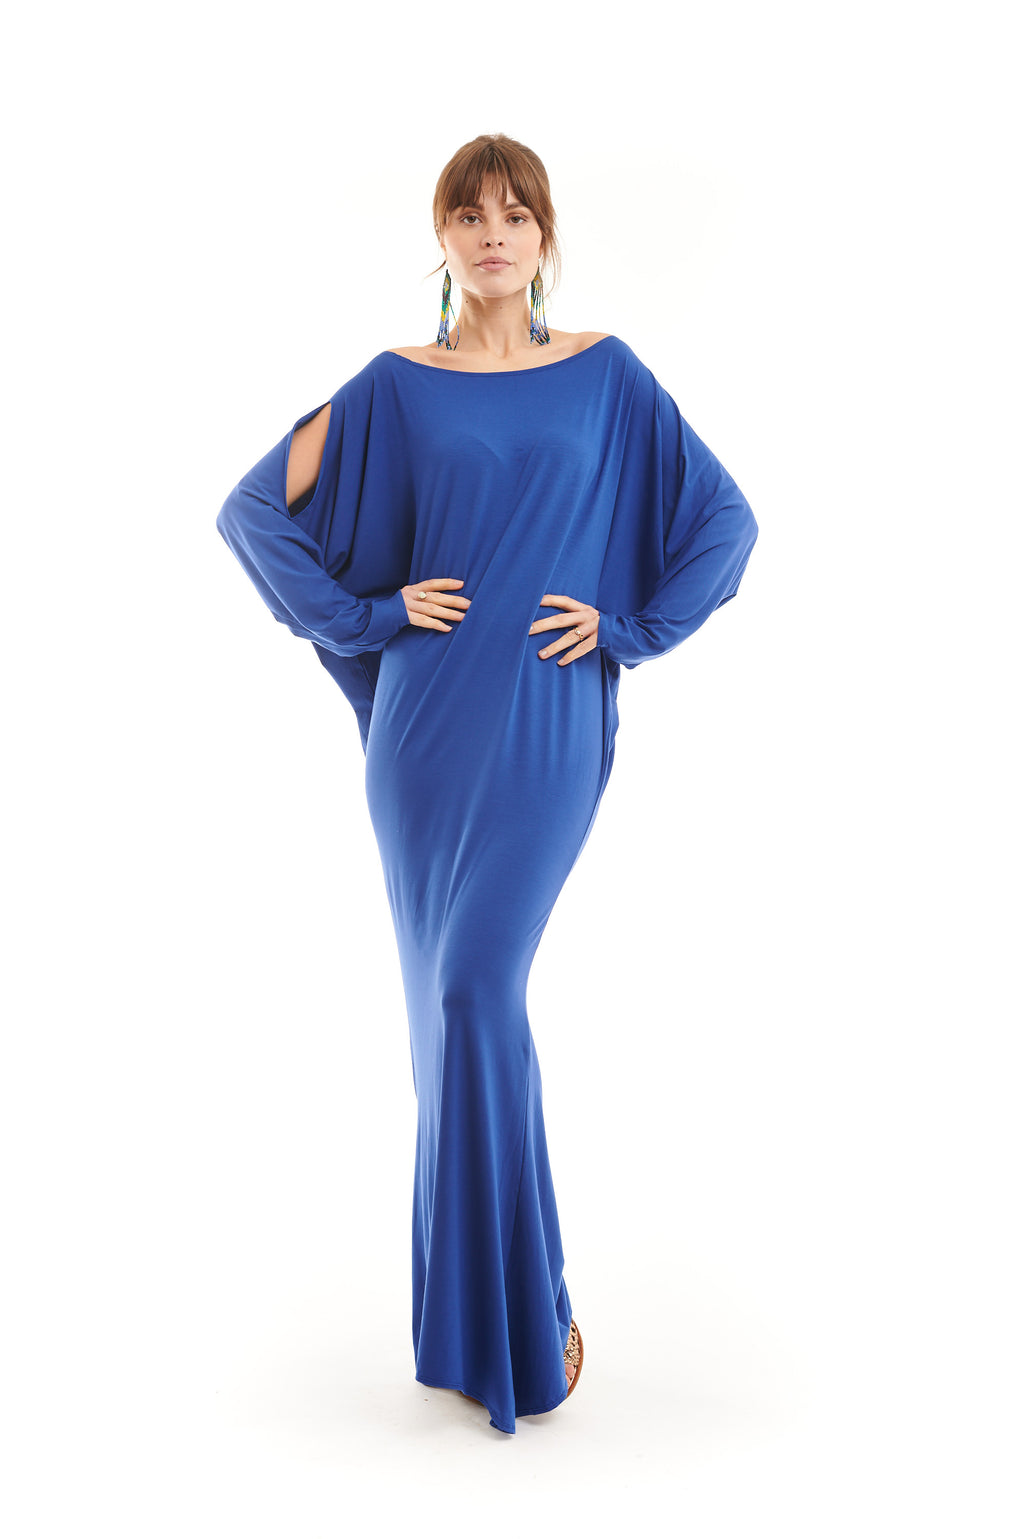 Bamboo Grecian Grace Dress Cobalt Blue - MUDRA